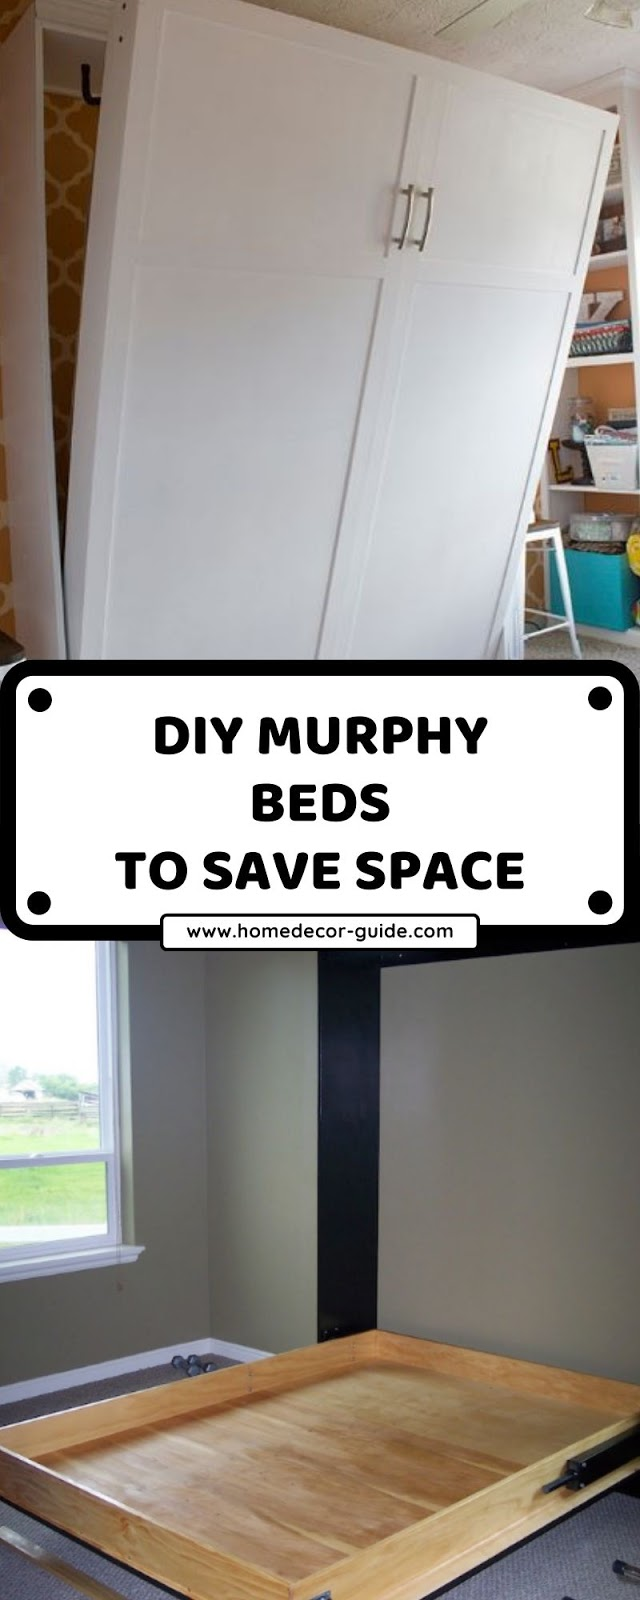 DIY MURPHY BEDS TO SAVE SPACE